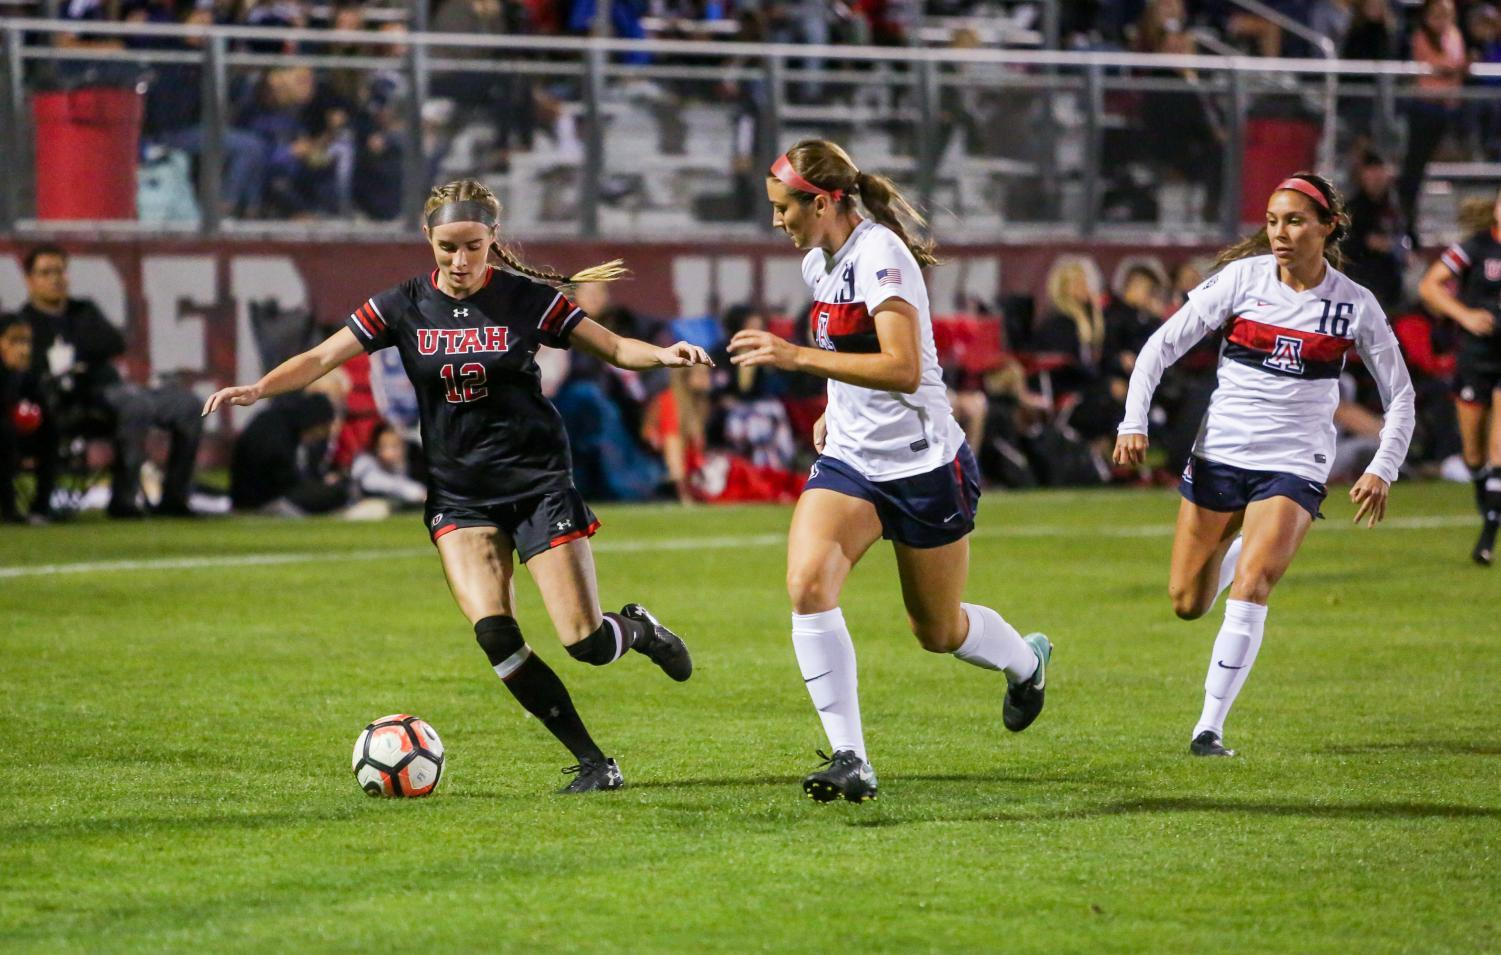 Holly Daugirda dribbles past an Arizona Defender as the Utah Women's Soccer Team takes on the Arizona Wildcats at Ute Soccer Field in Salt Lake City, UT on Thursday,Oct. 19, 2017.(Photo by Curtis Lin/ Daily Utah Chronicle)